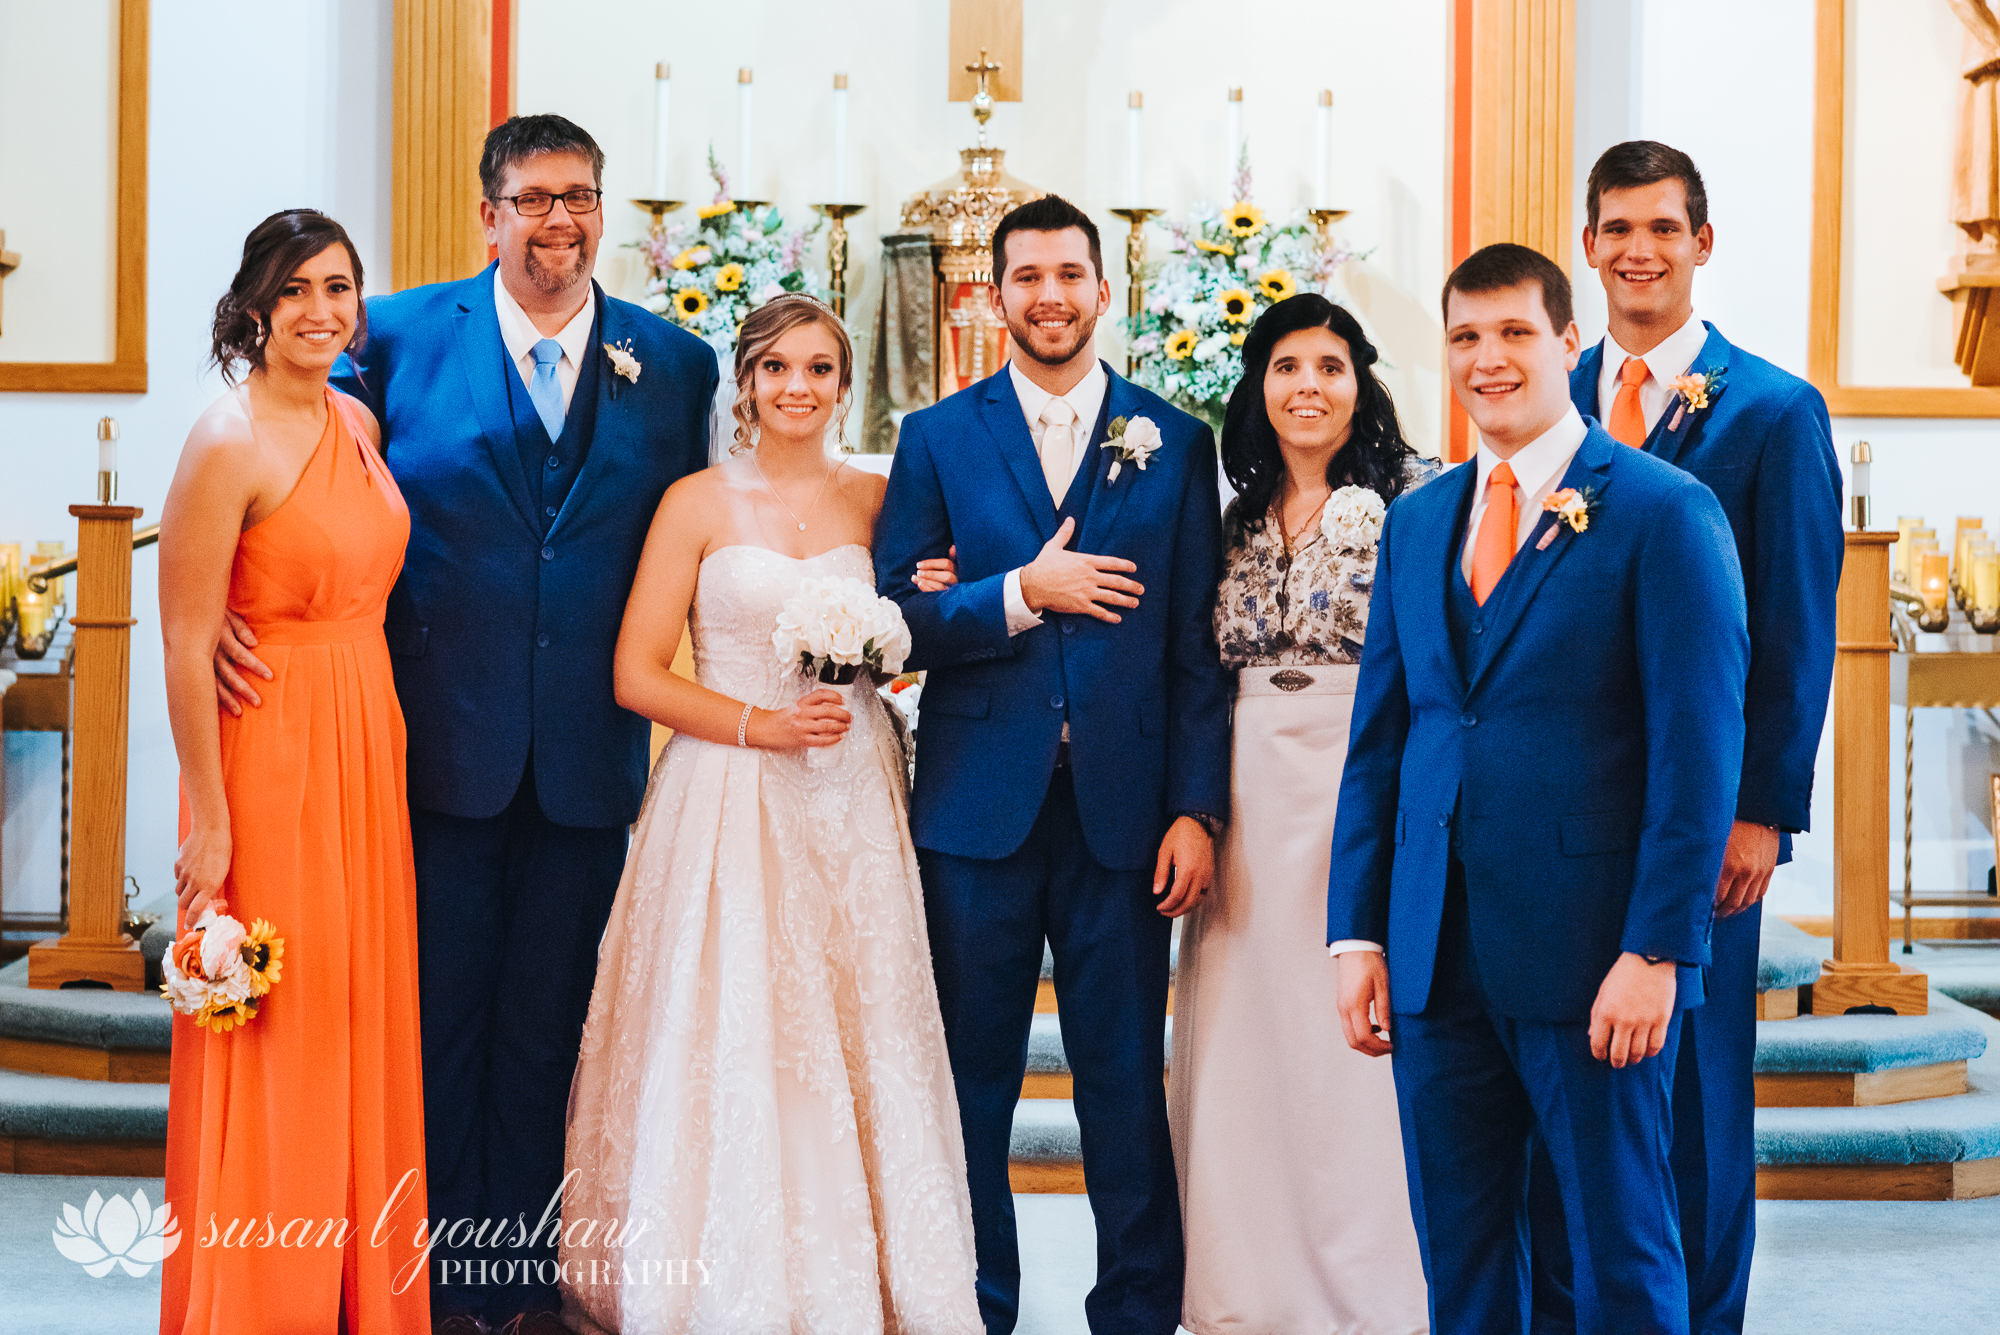 BLOG Kylie and corey Bennet 10-13-2018 SLY Photography LLC-65.jpg